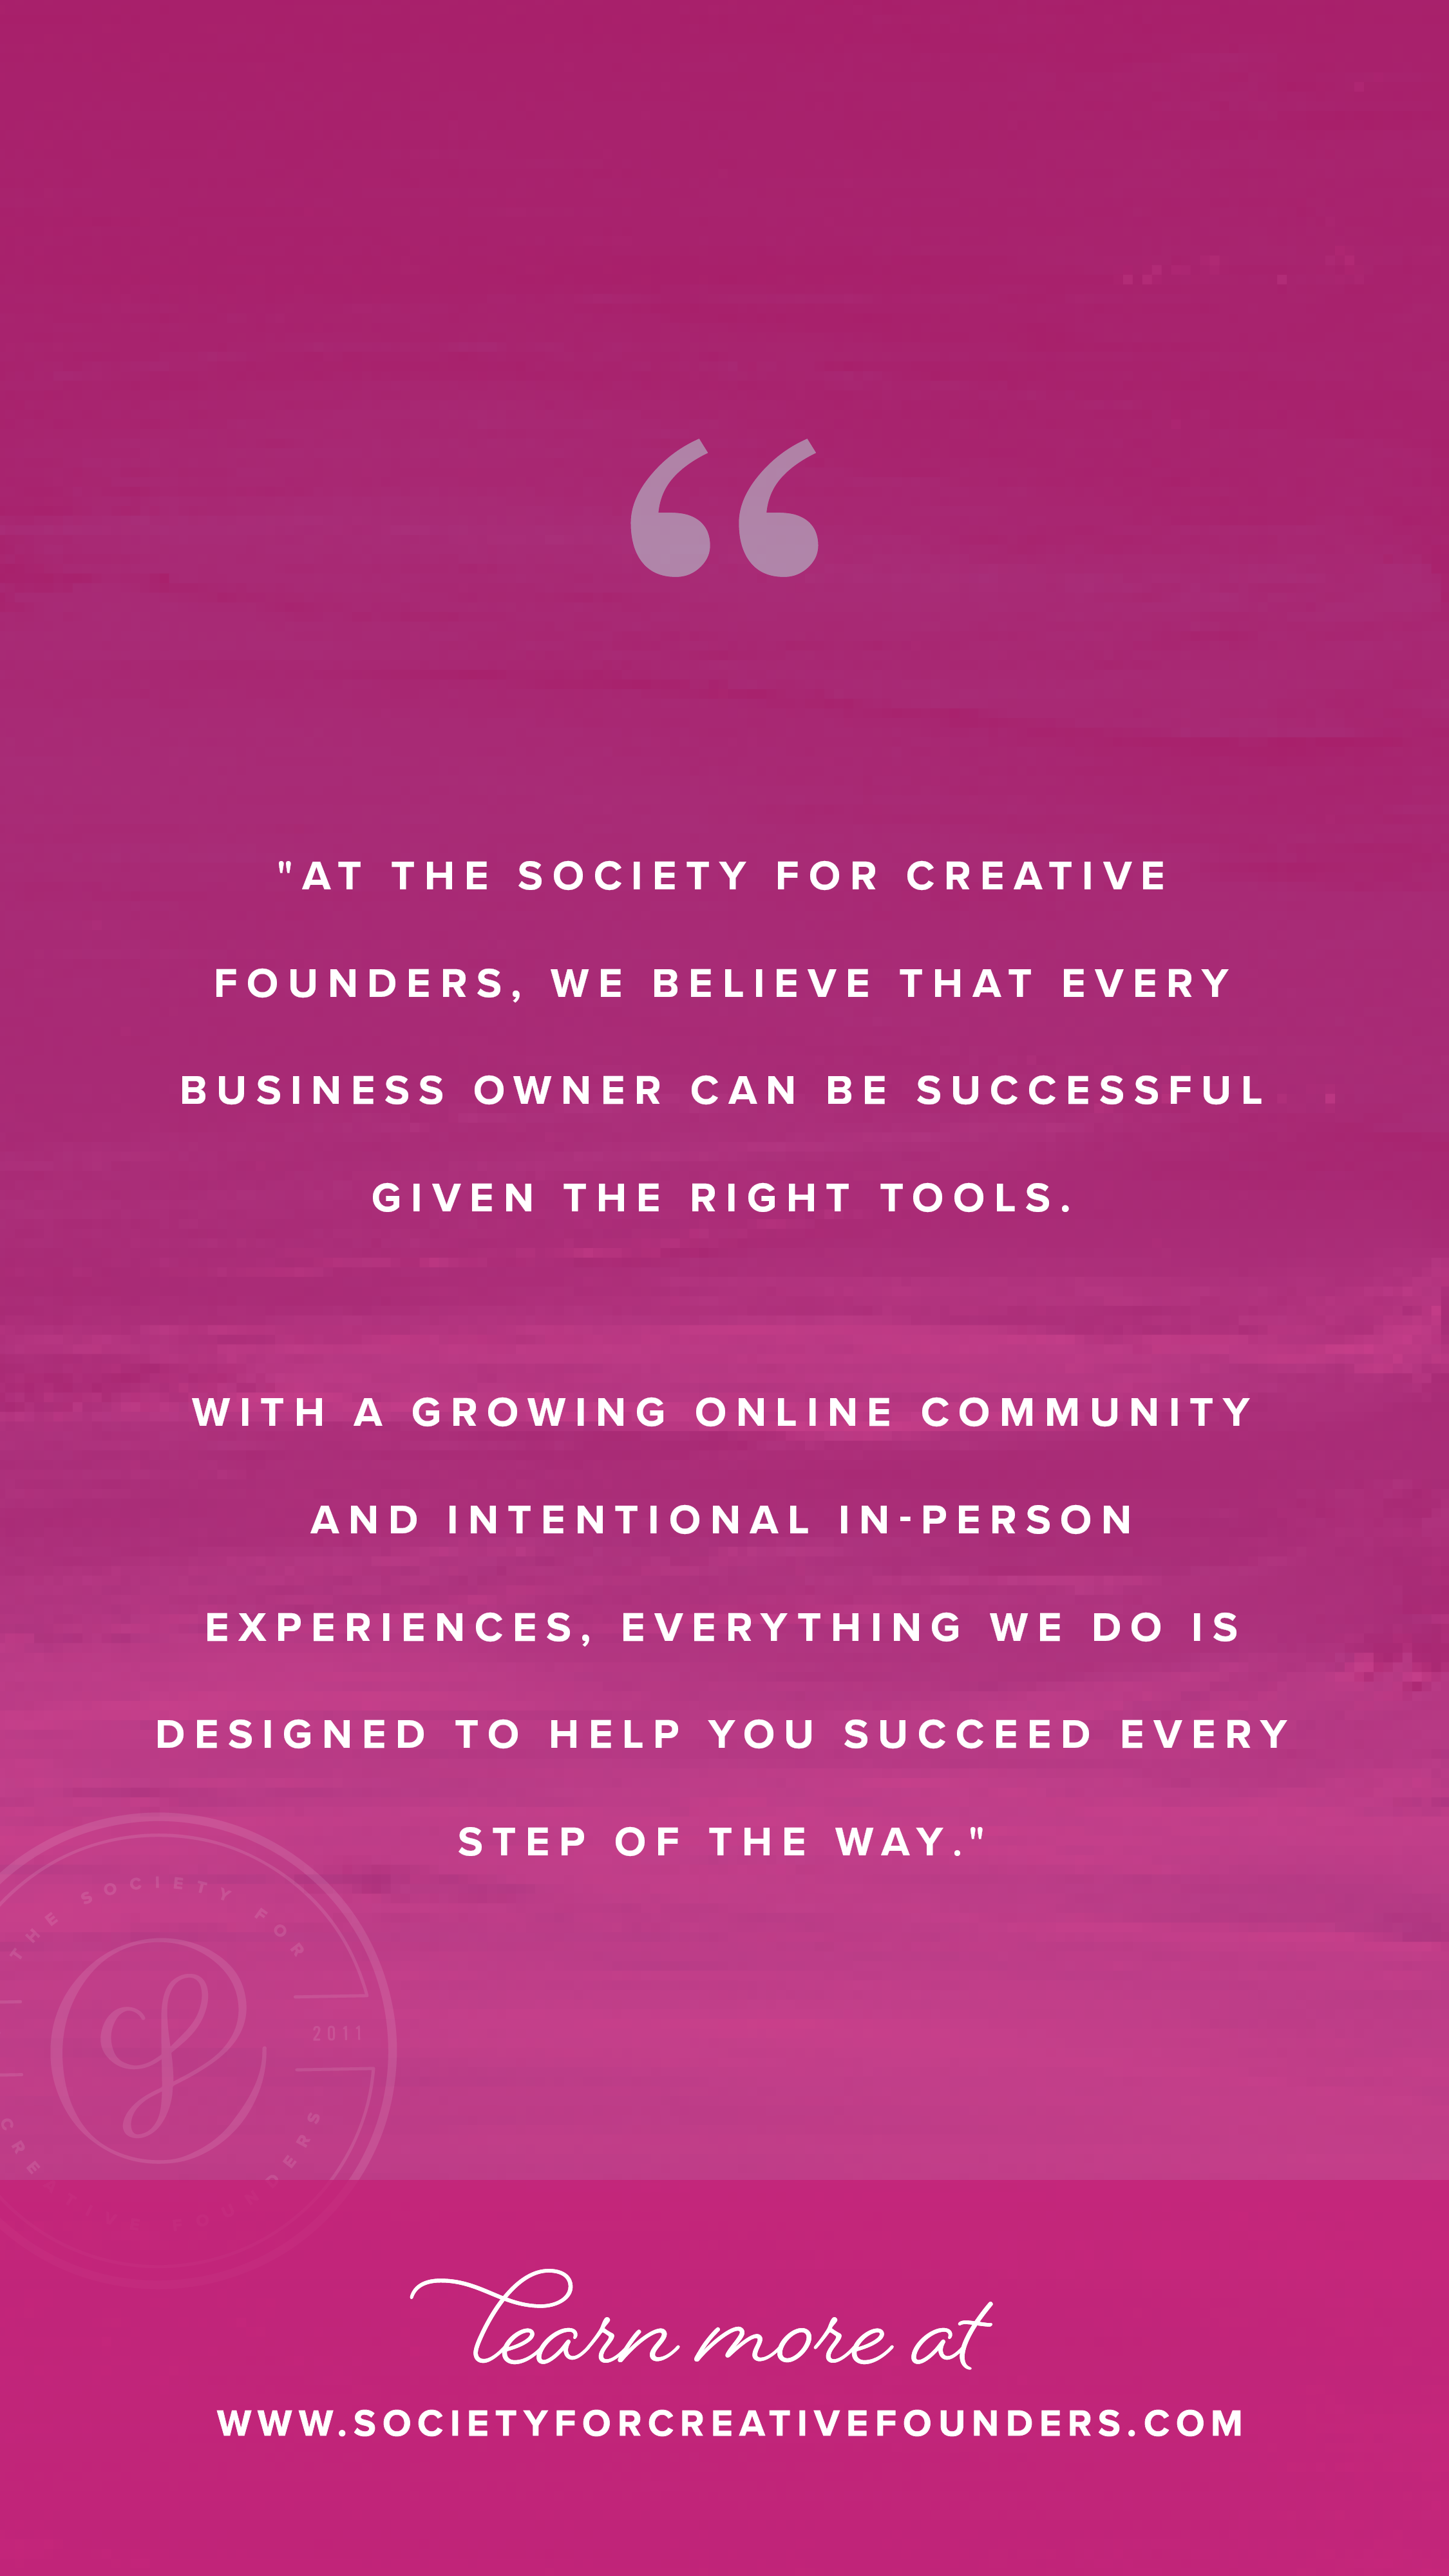 Society for Creative Founders Mission Statement